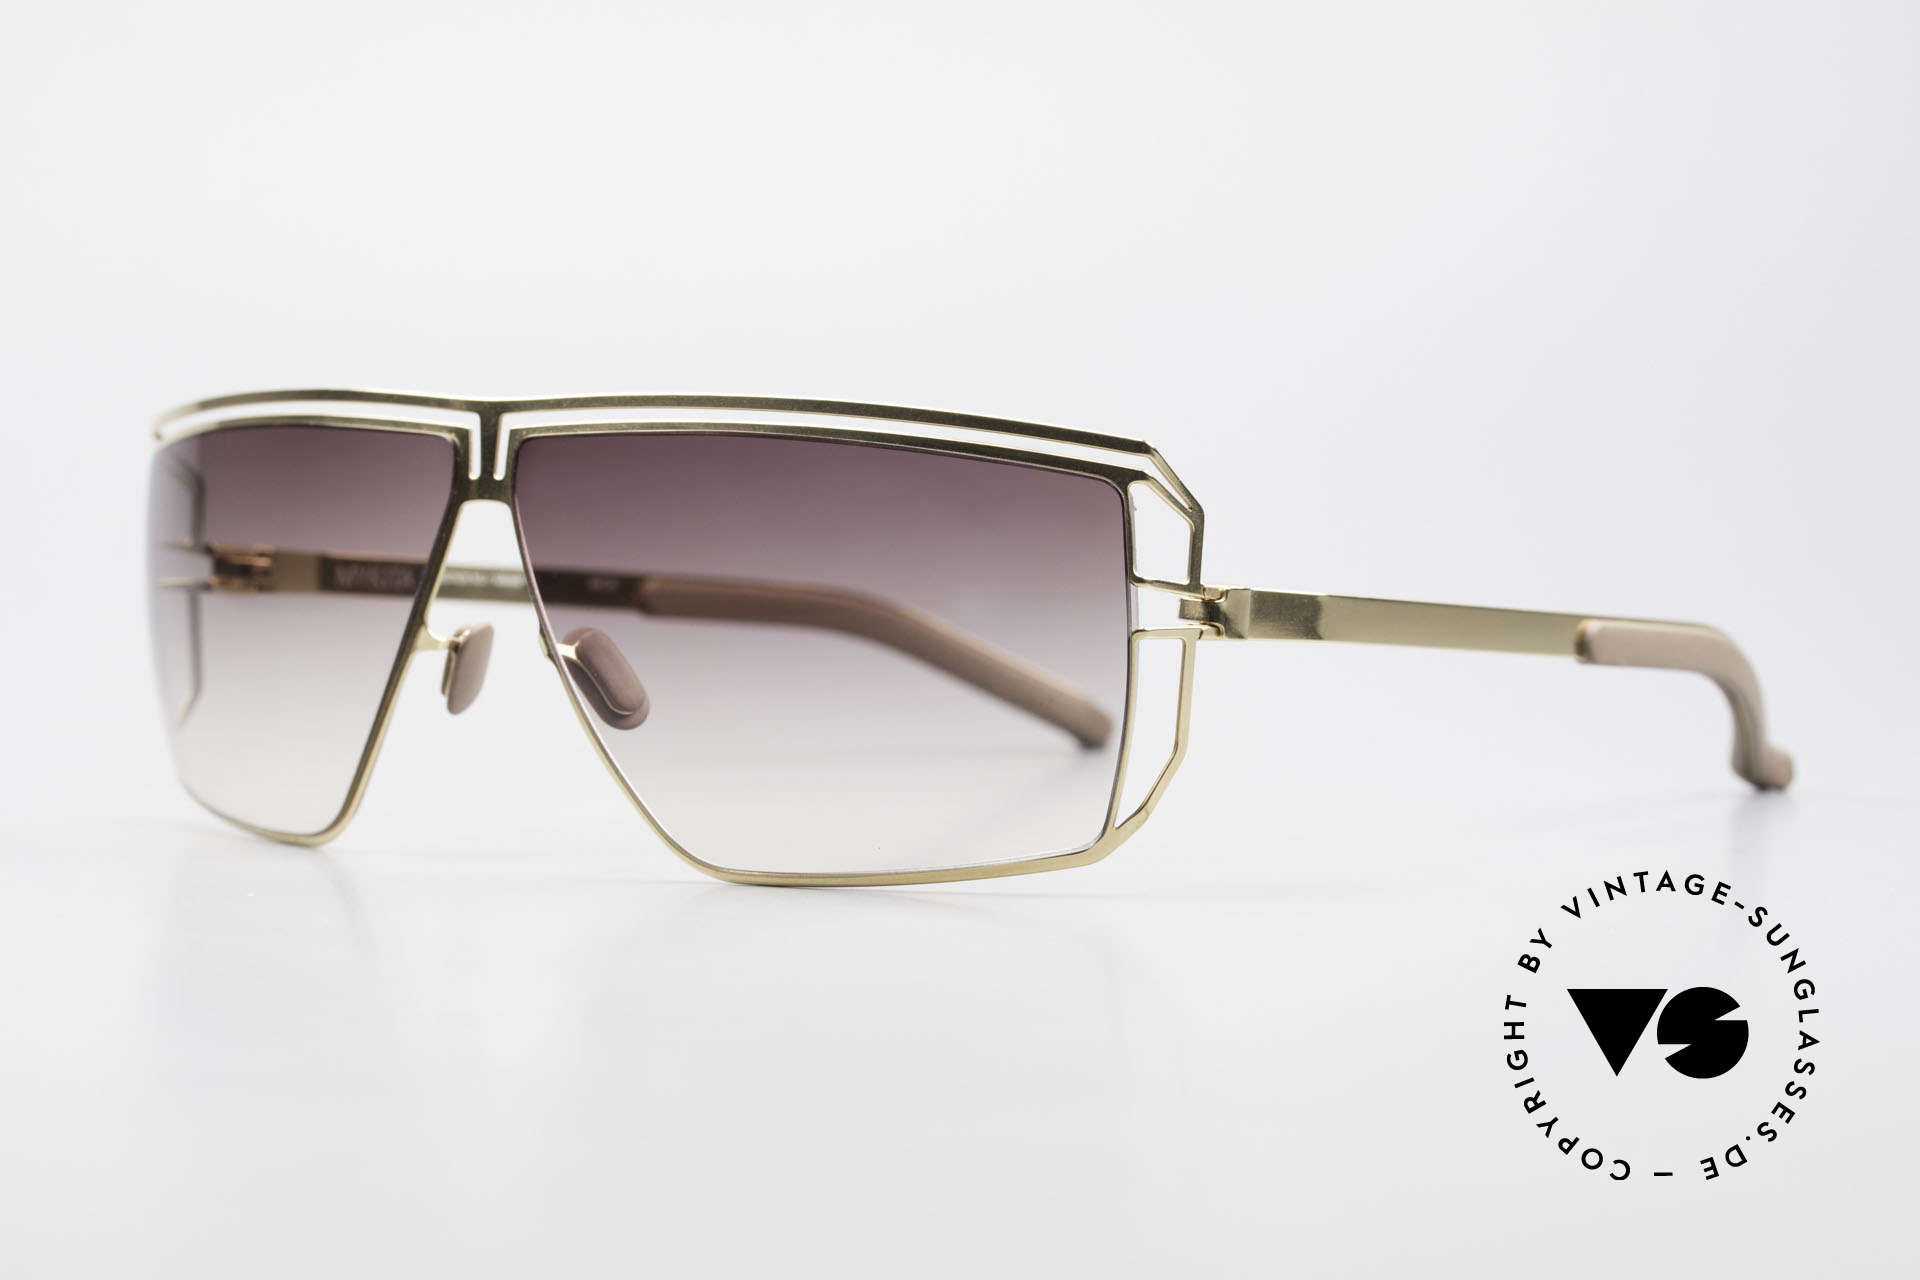 Mykita Anais Ladies Sunglasses From 2007, Mod. No.1 Anais Glossygold, brown-gradient, size 64/8, Made for Women